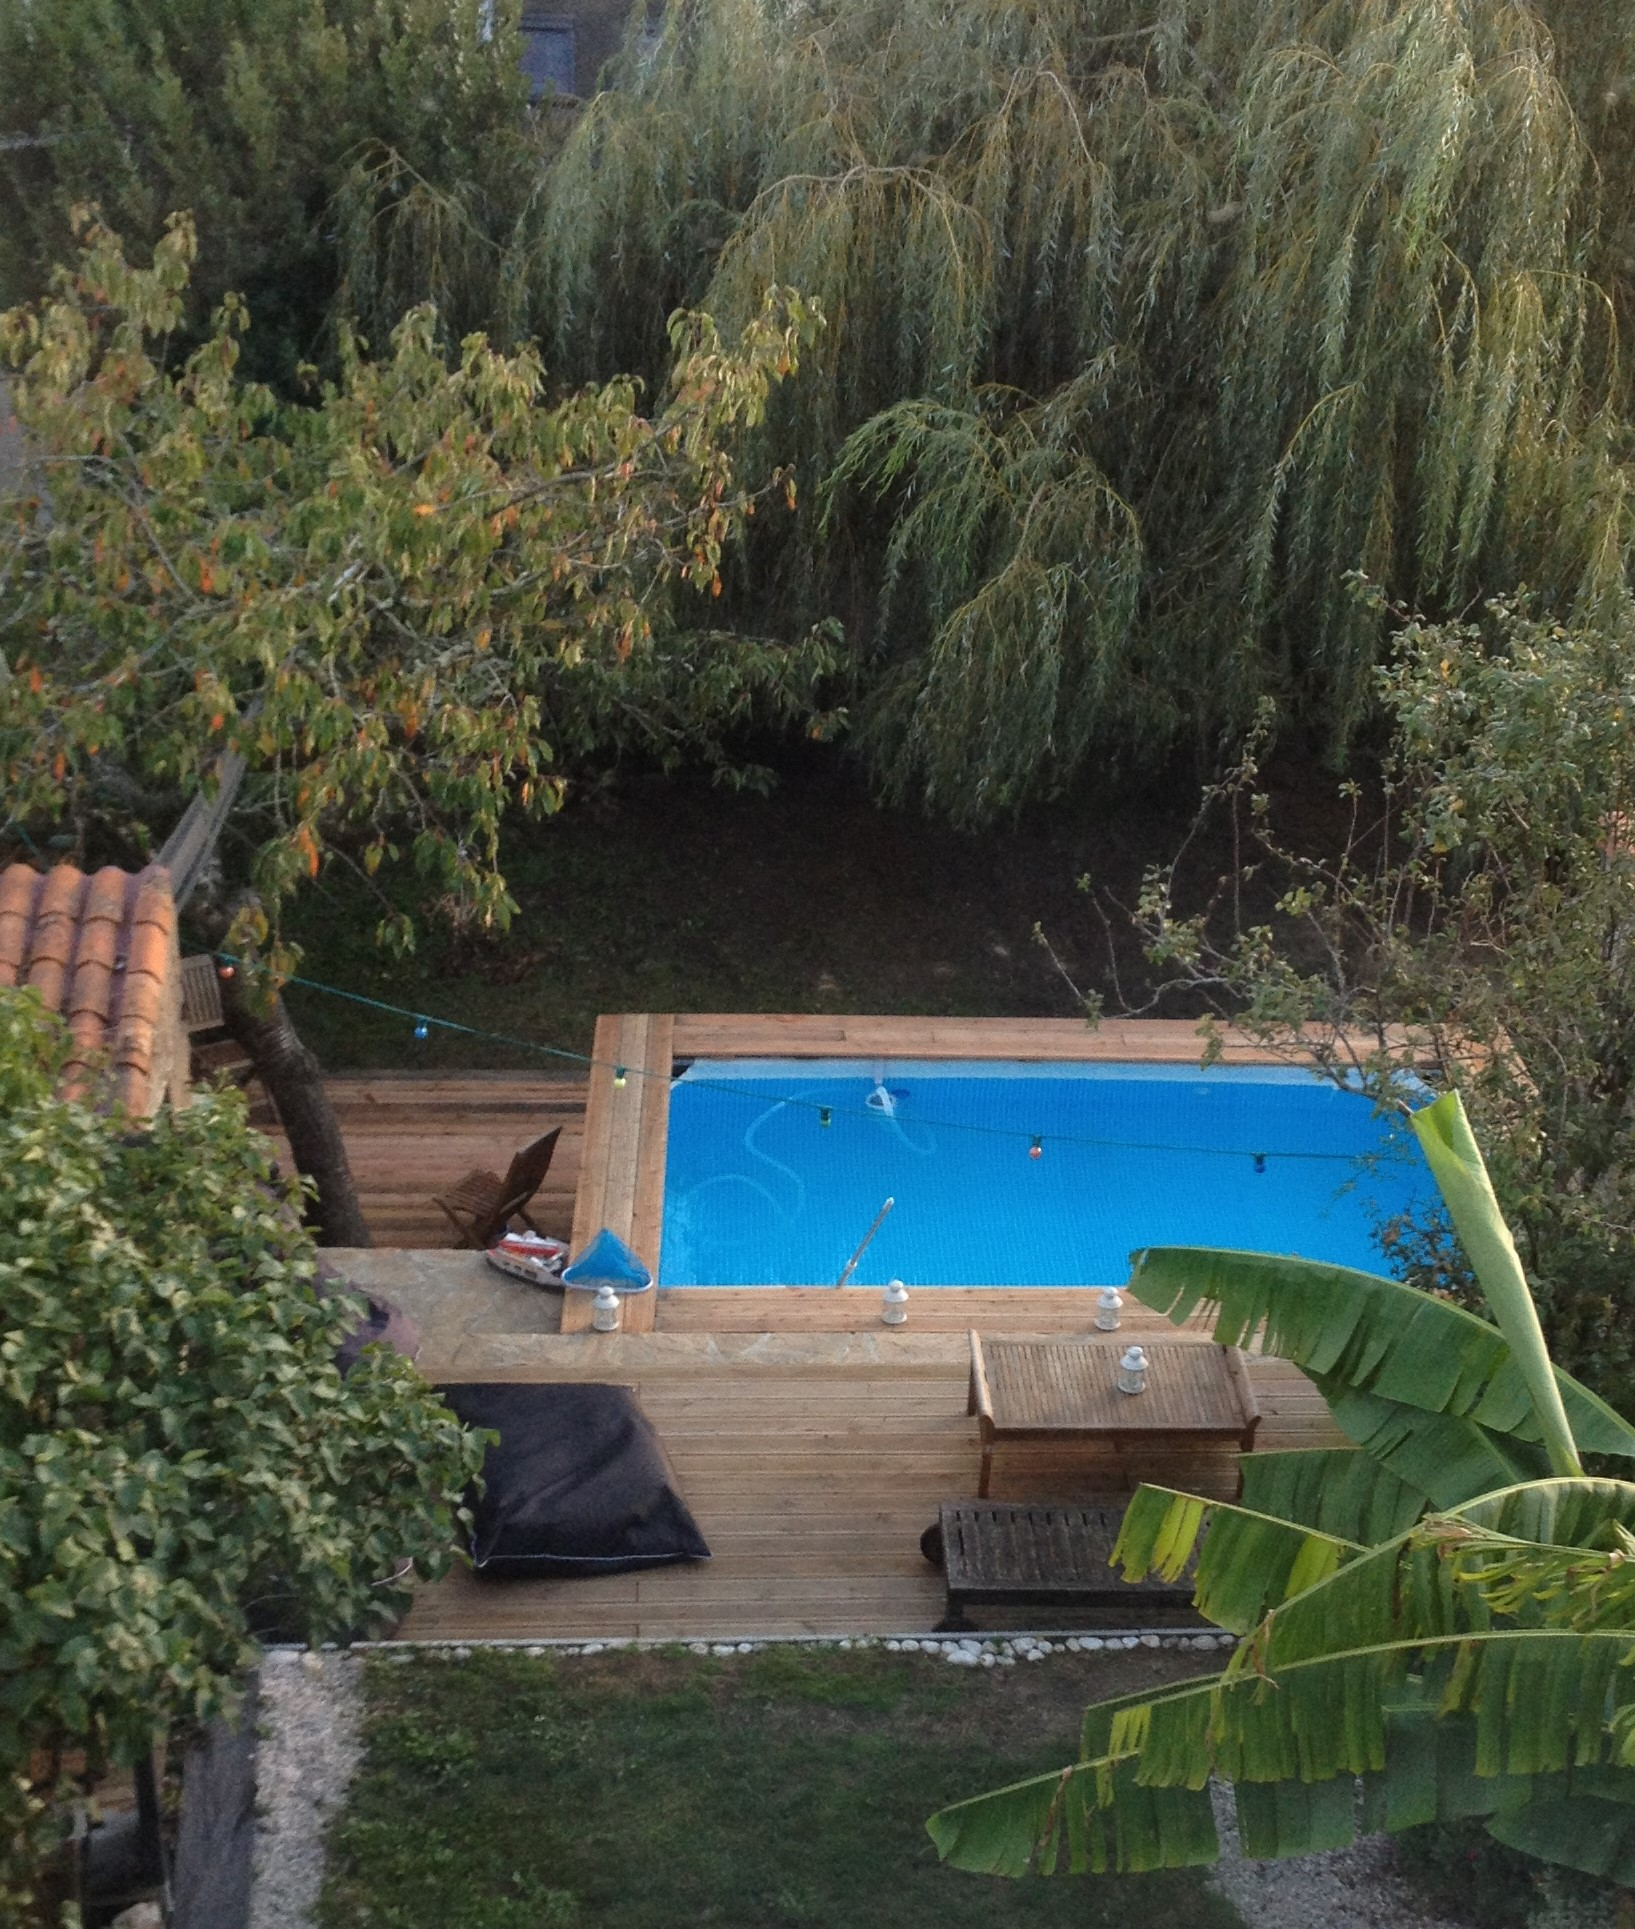 Comment encastrer sa piscine hors sol blog de raviday for Enterrer une piscine bois